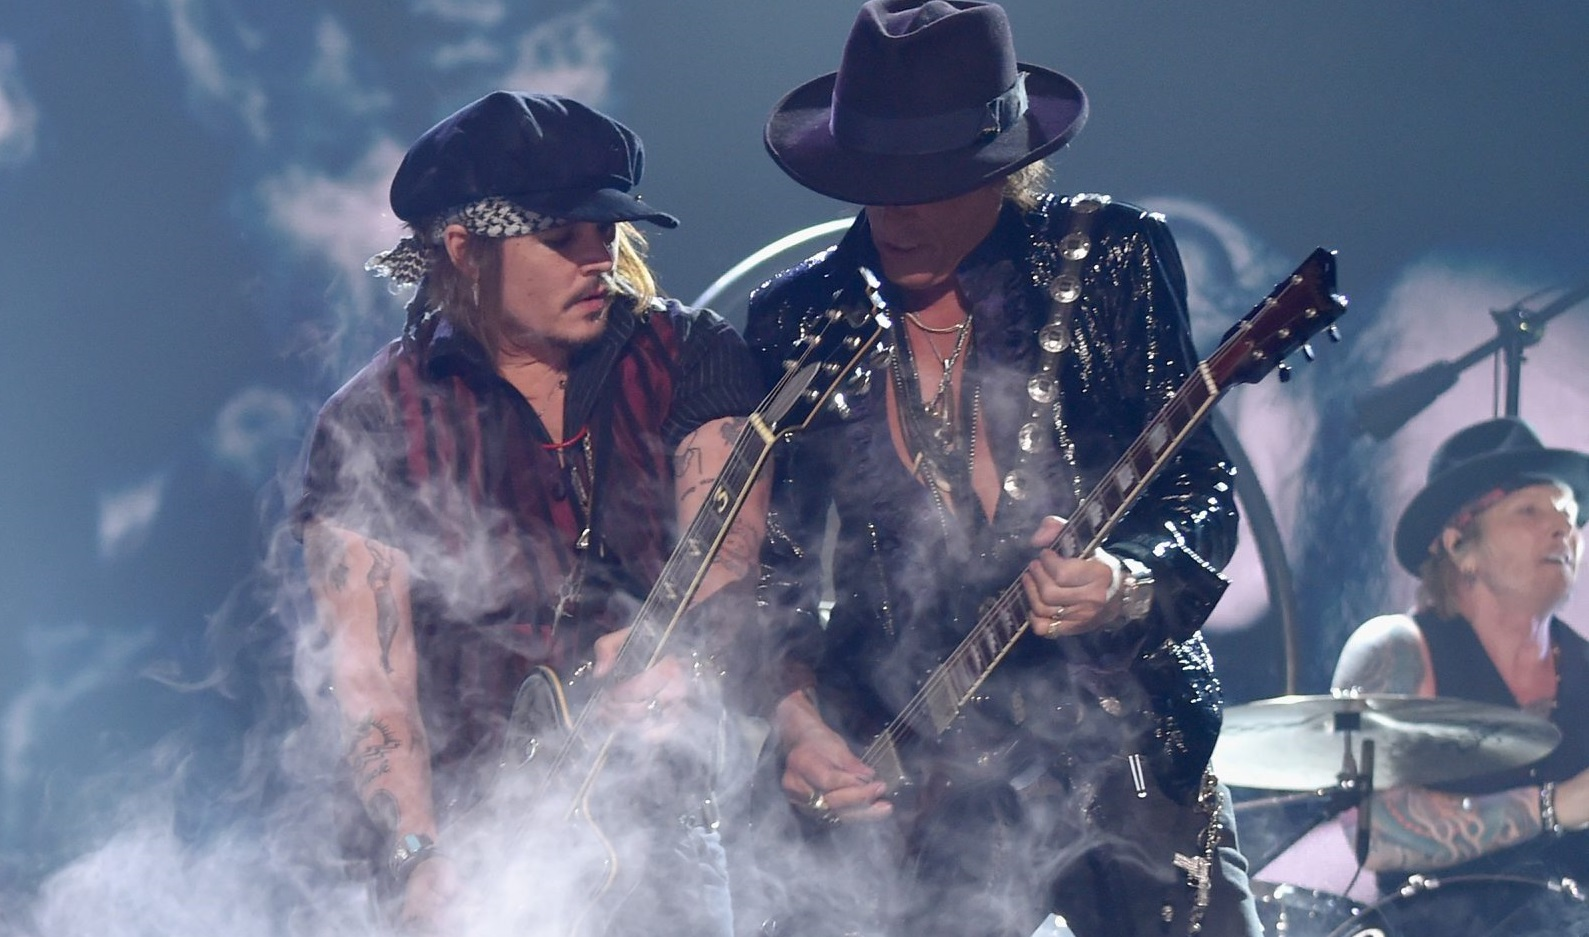 Actor-musician Johnny Depp and Joe Perry of Hollywood Vampires make Jeff Miers' top 10 Buffalo shows to see. (Getty Images)